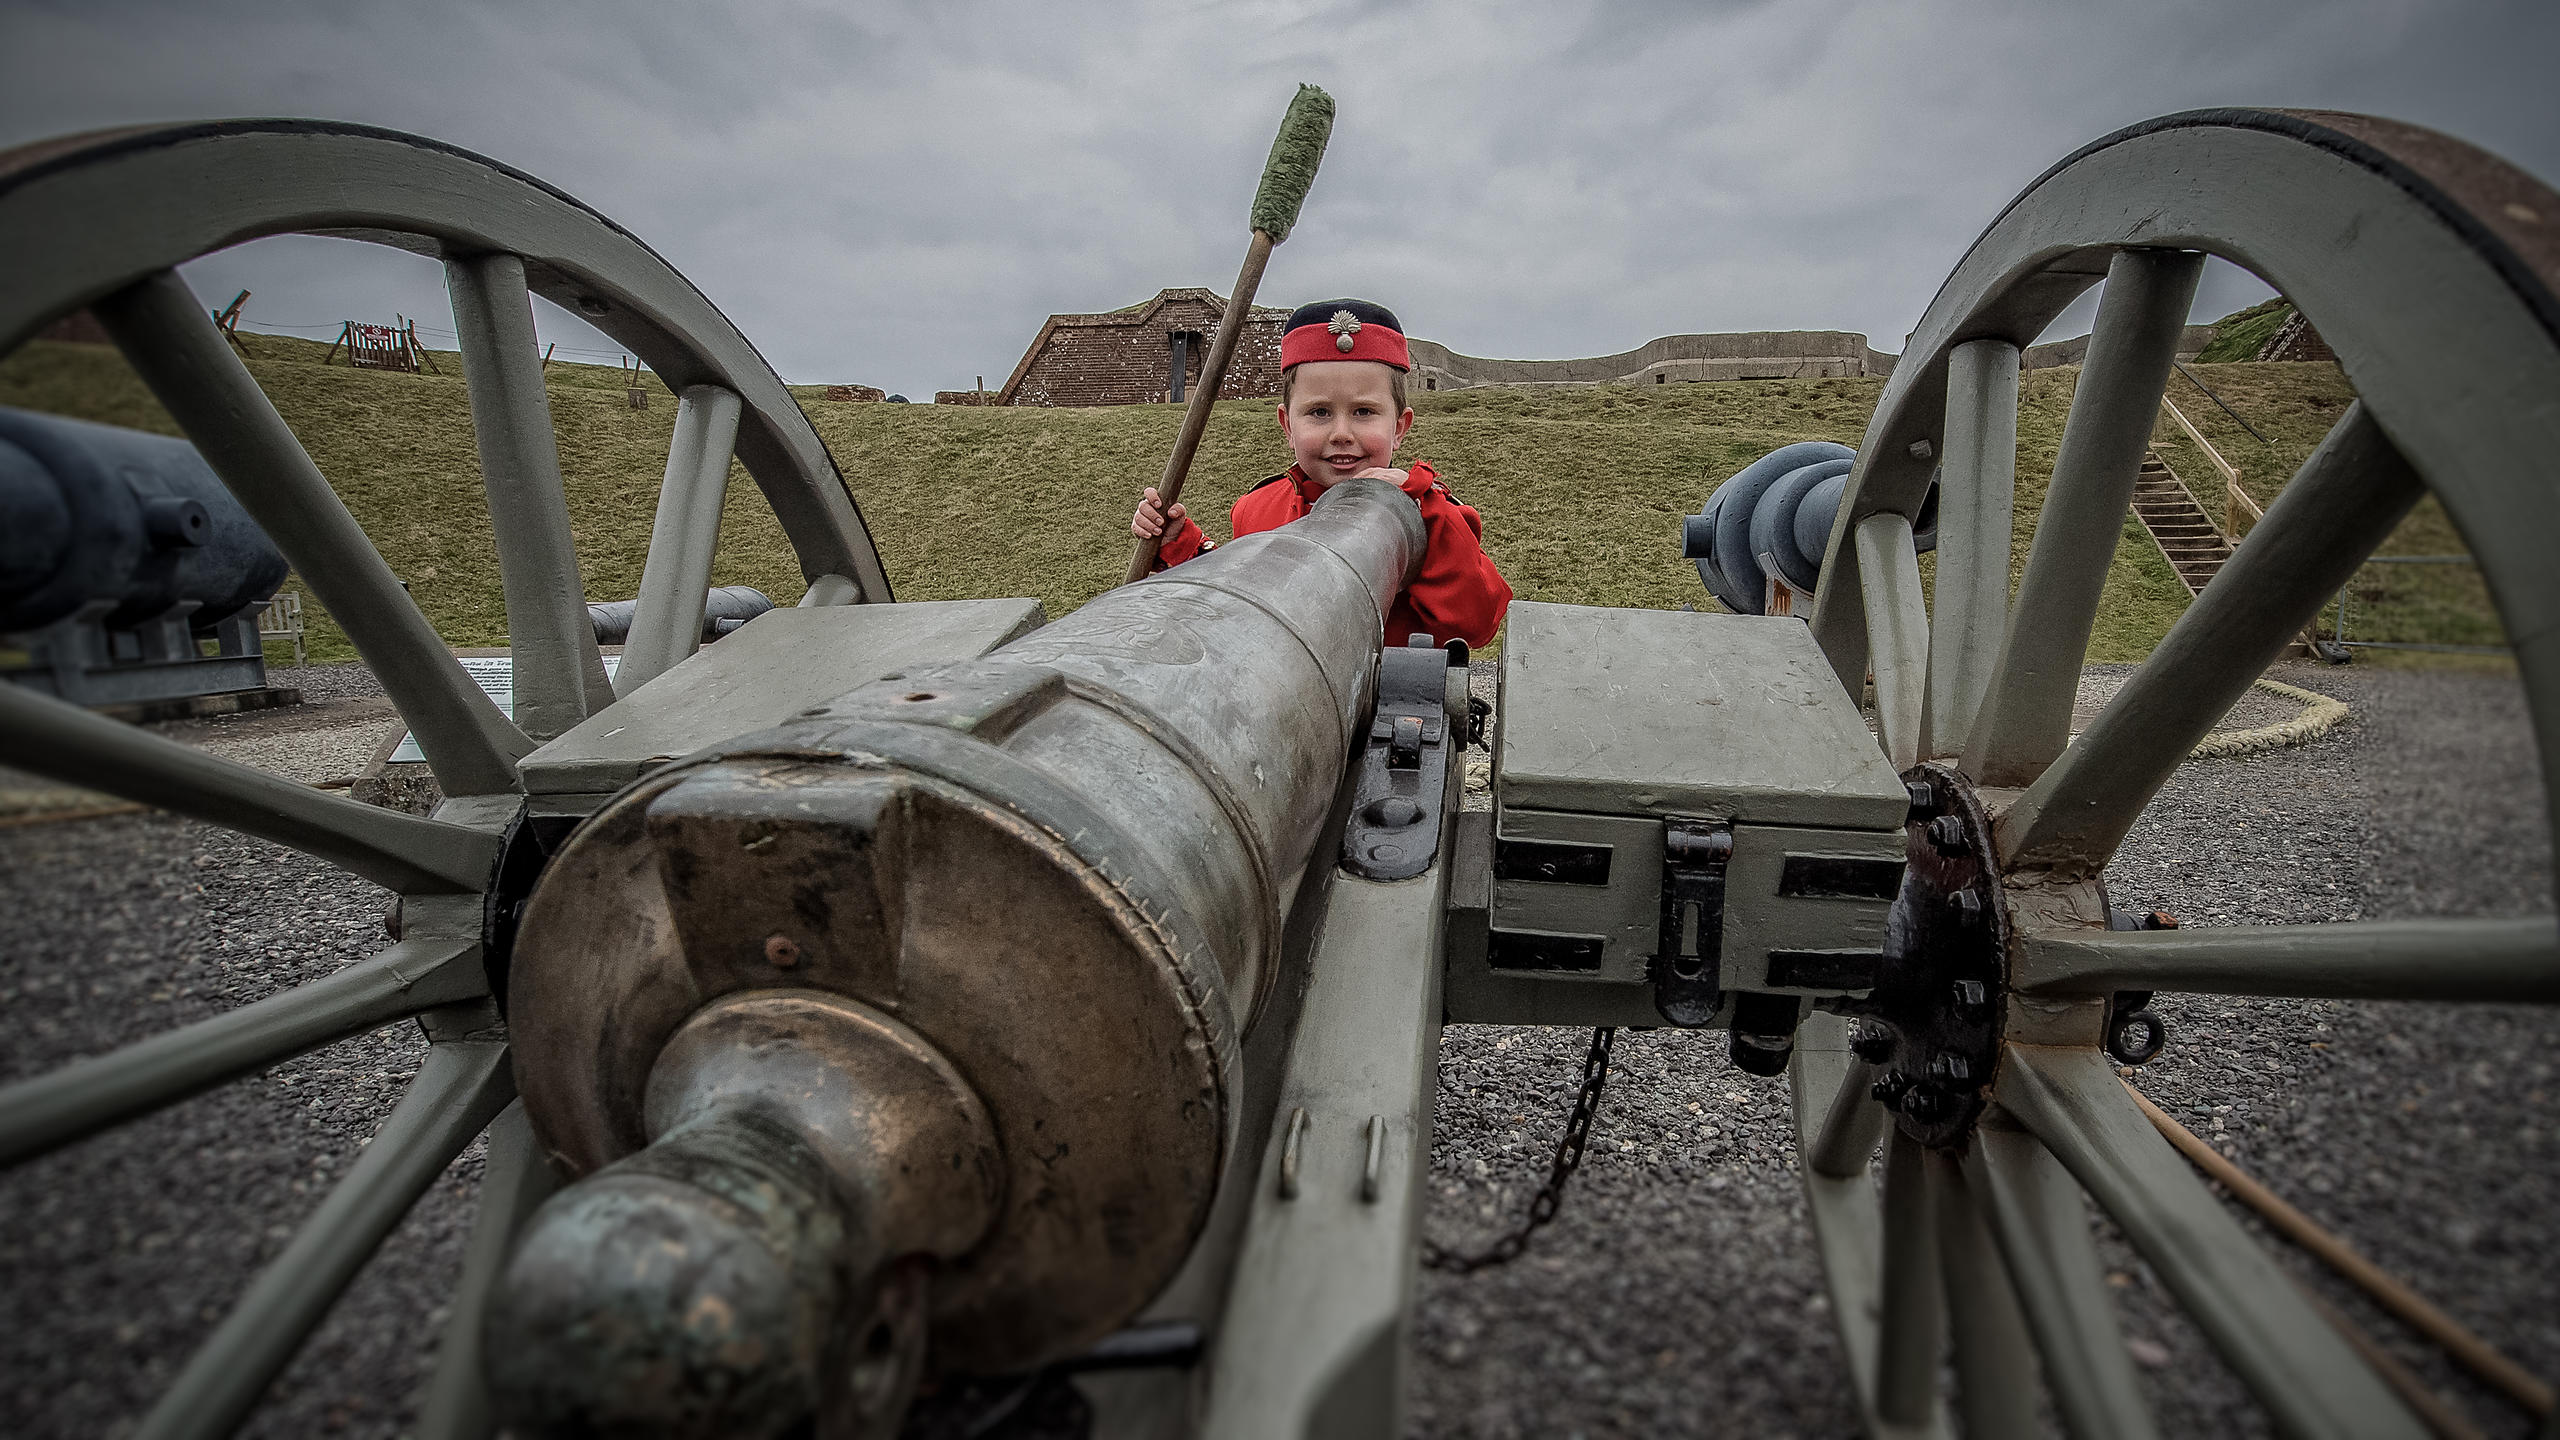 Visitors Enjoying Fort Nelson on Portsdown hill